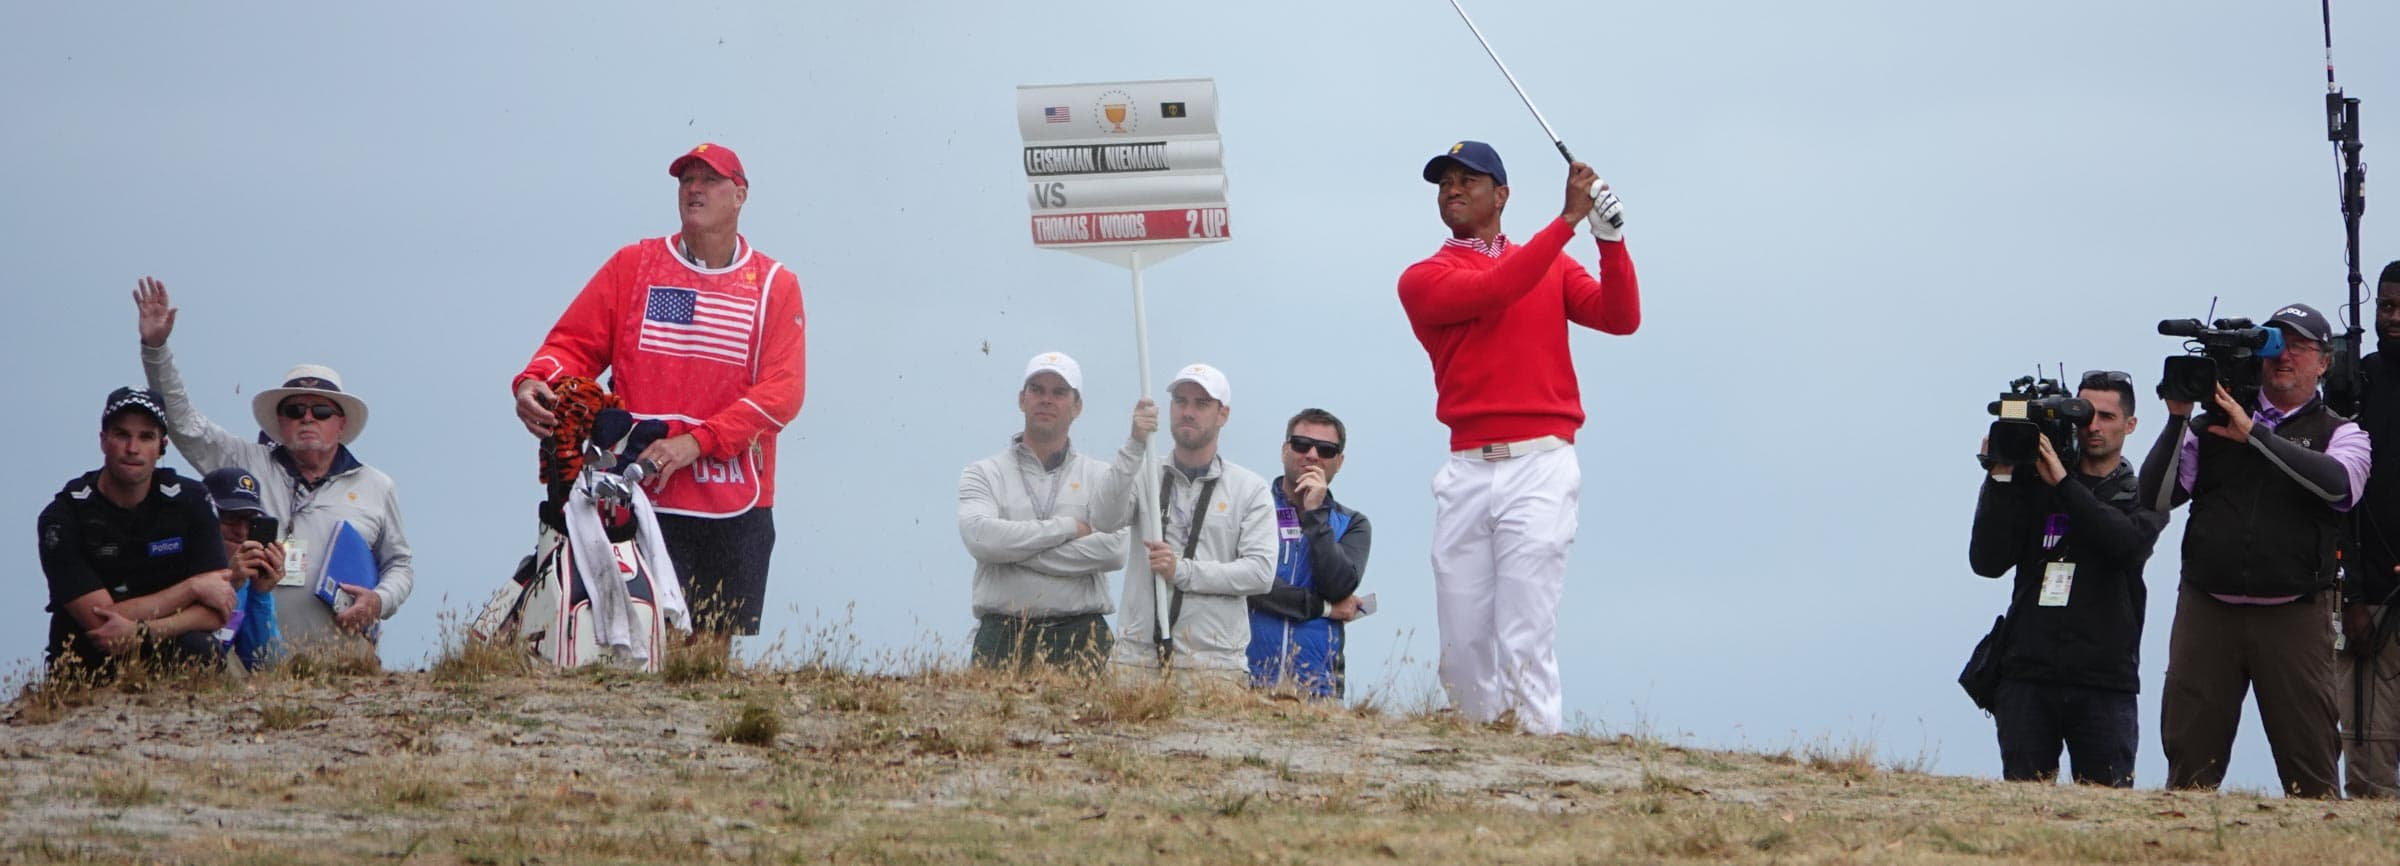 Tiger woods watches the result of this approach on the 11th hole ion the opening matches of the 2019 Presidents Cup.